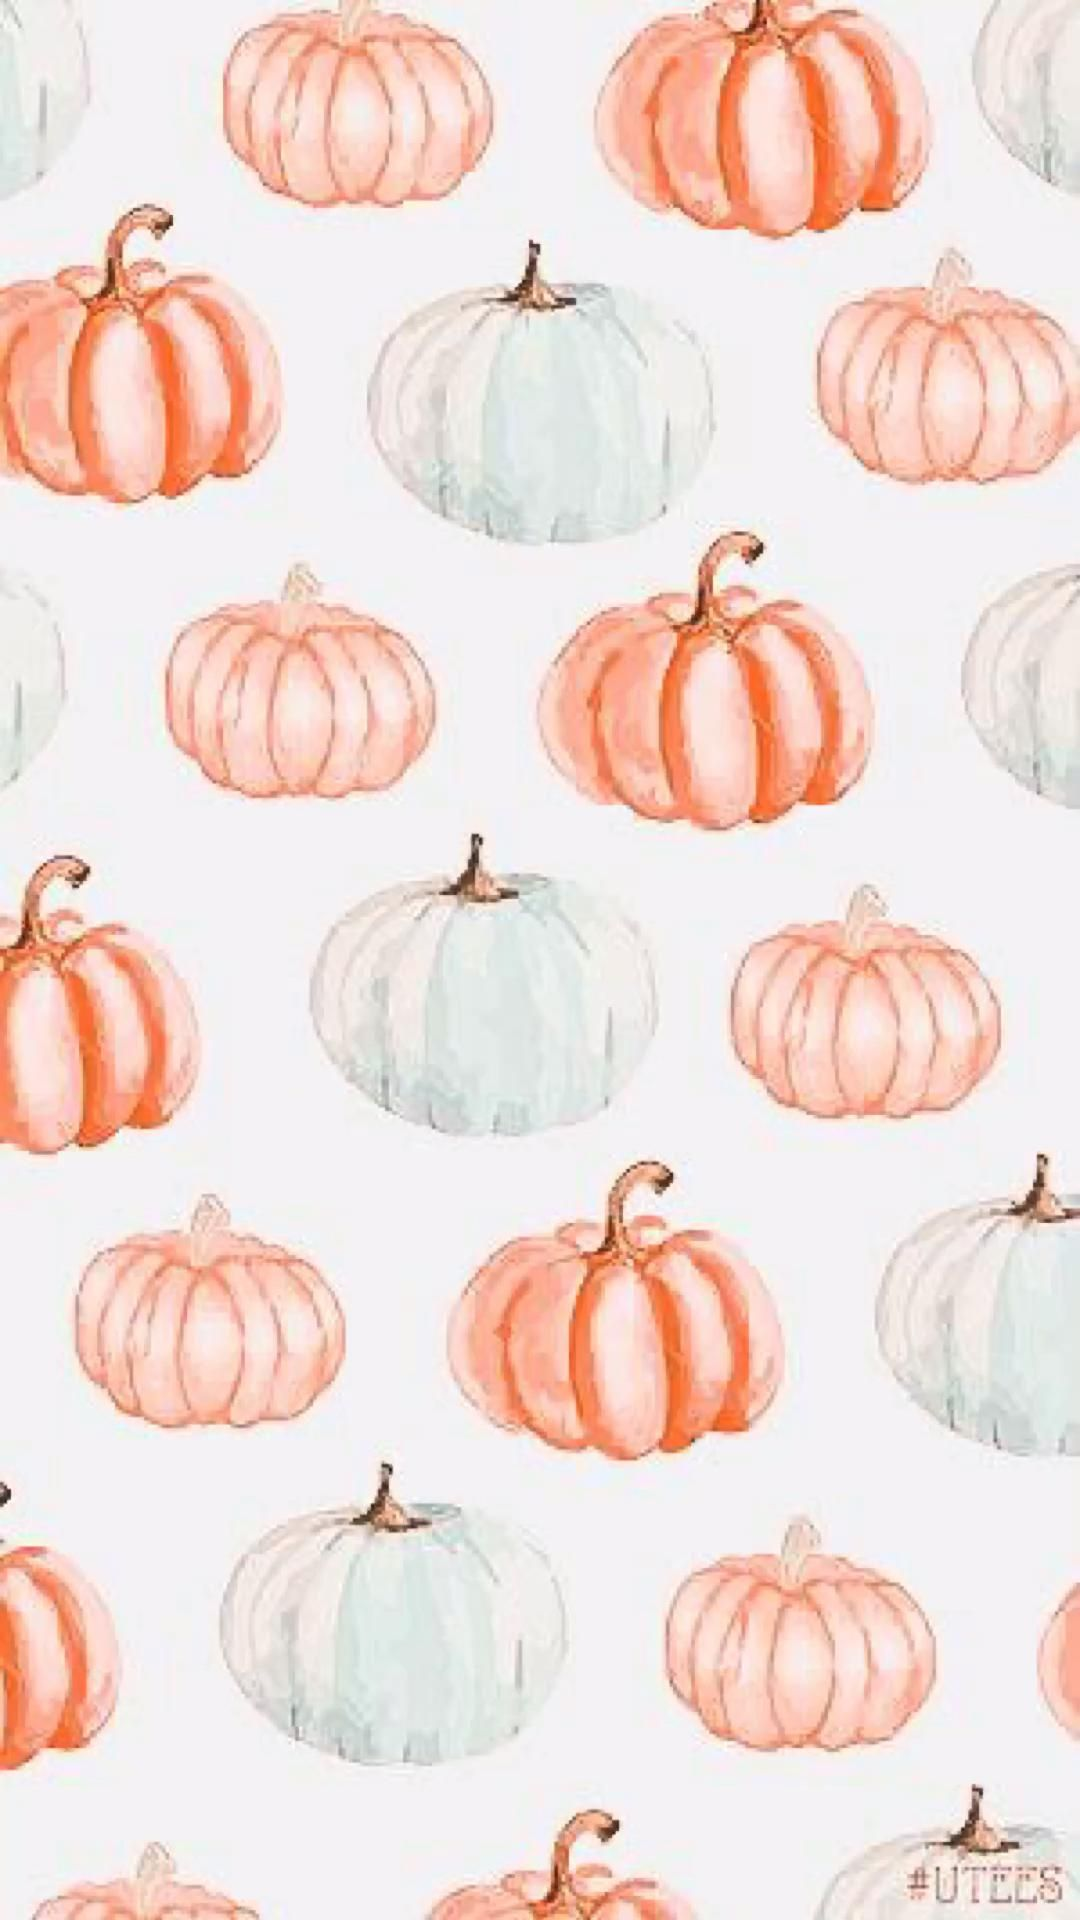 Aesthetic Pumpkin 🎃 wallpapers! I will have more aesthetic fall wallpapers coming don't worry!